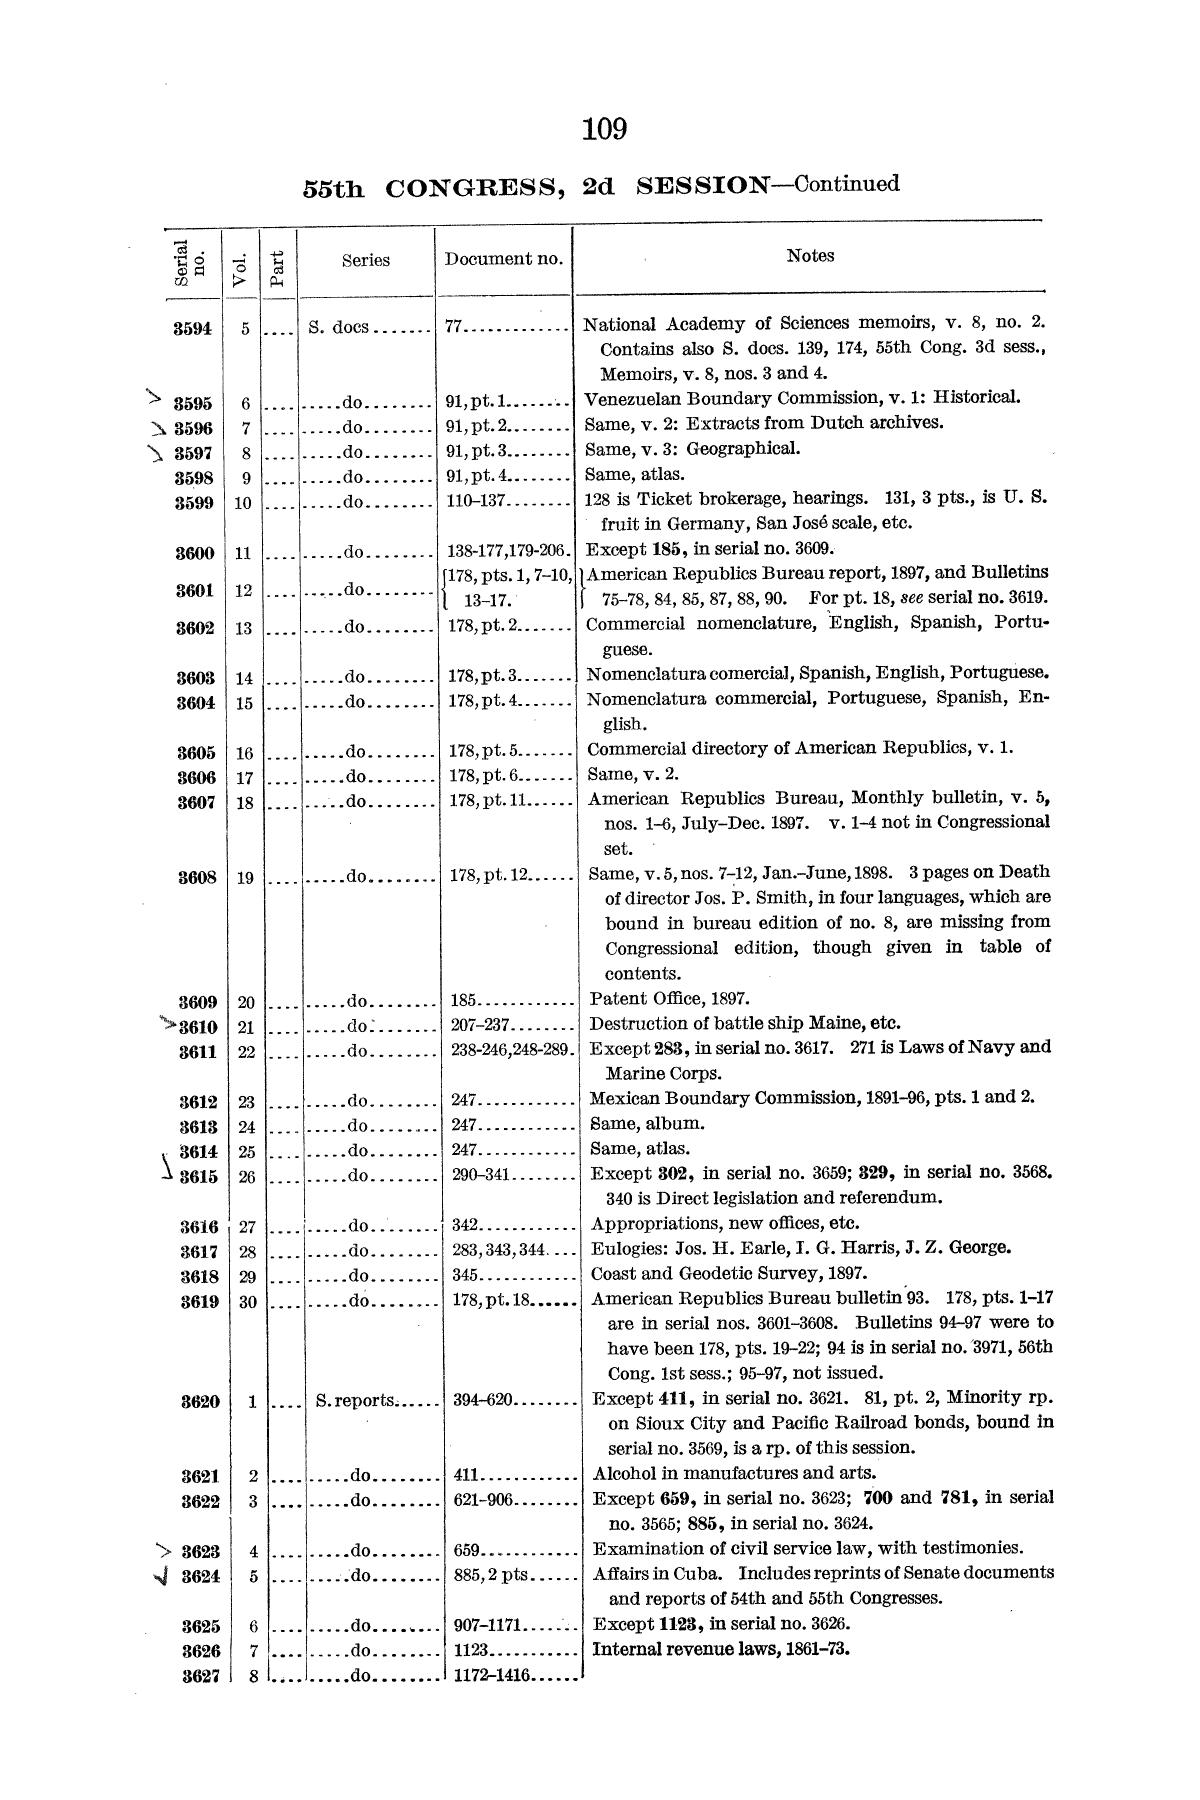 Checklist of United States Public Documents, 1789-1909, Third Edition Revised and Enlarged, Volume 1, Lists of Congressional and Departmental Publications                                                                                                      109